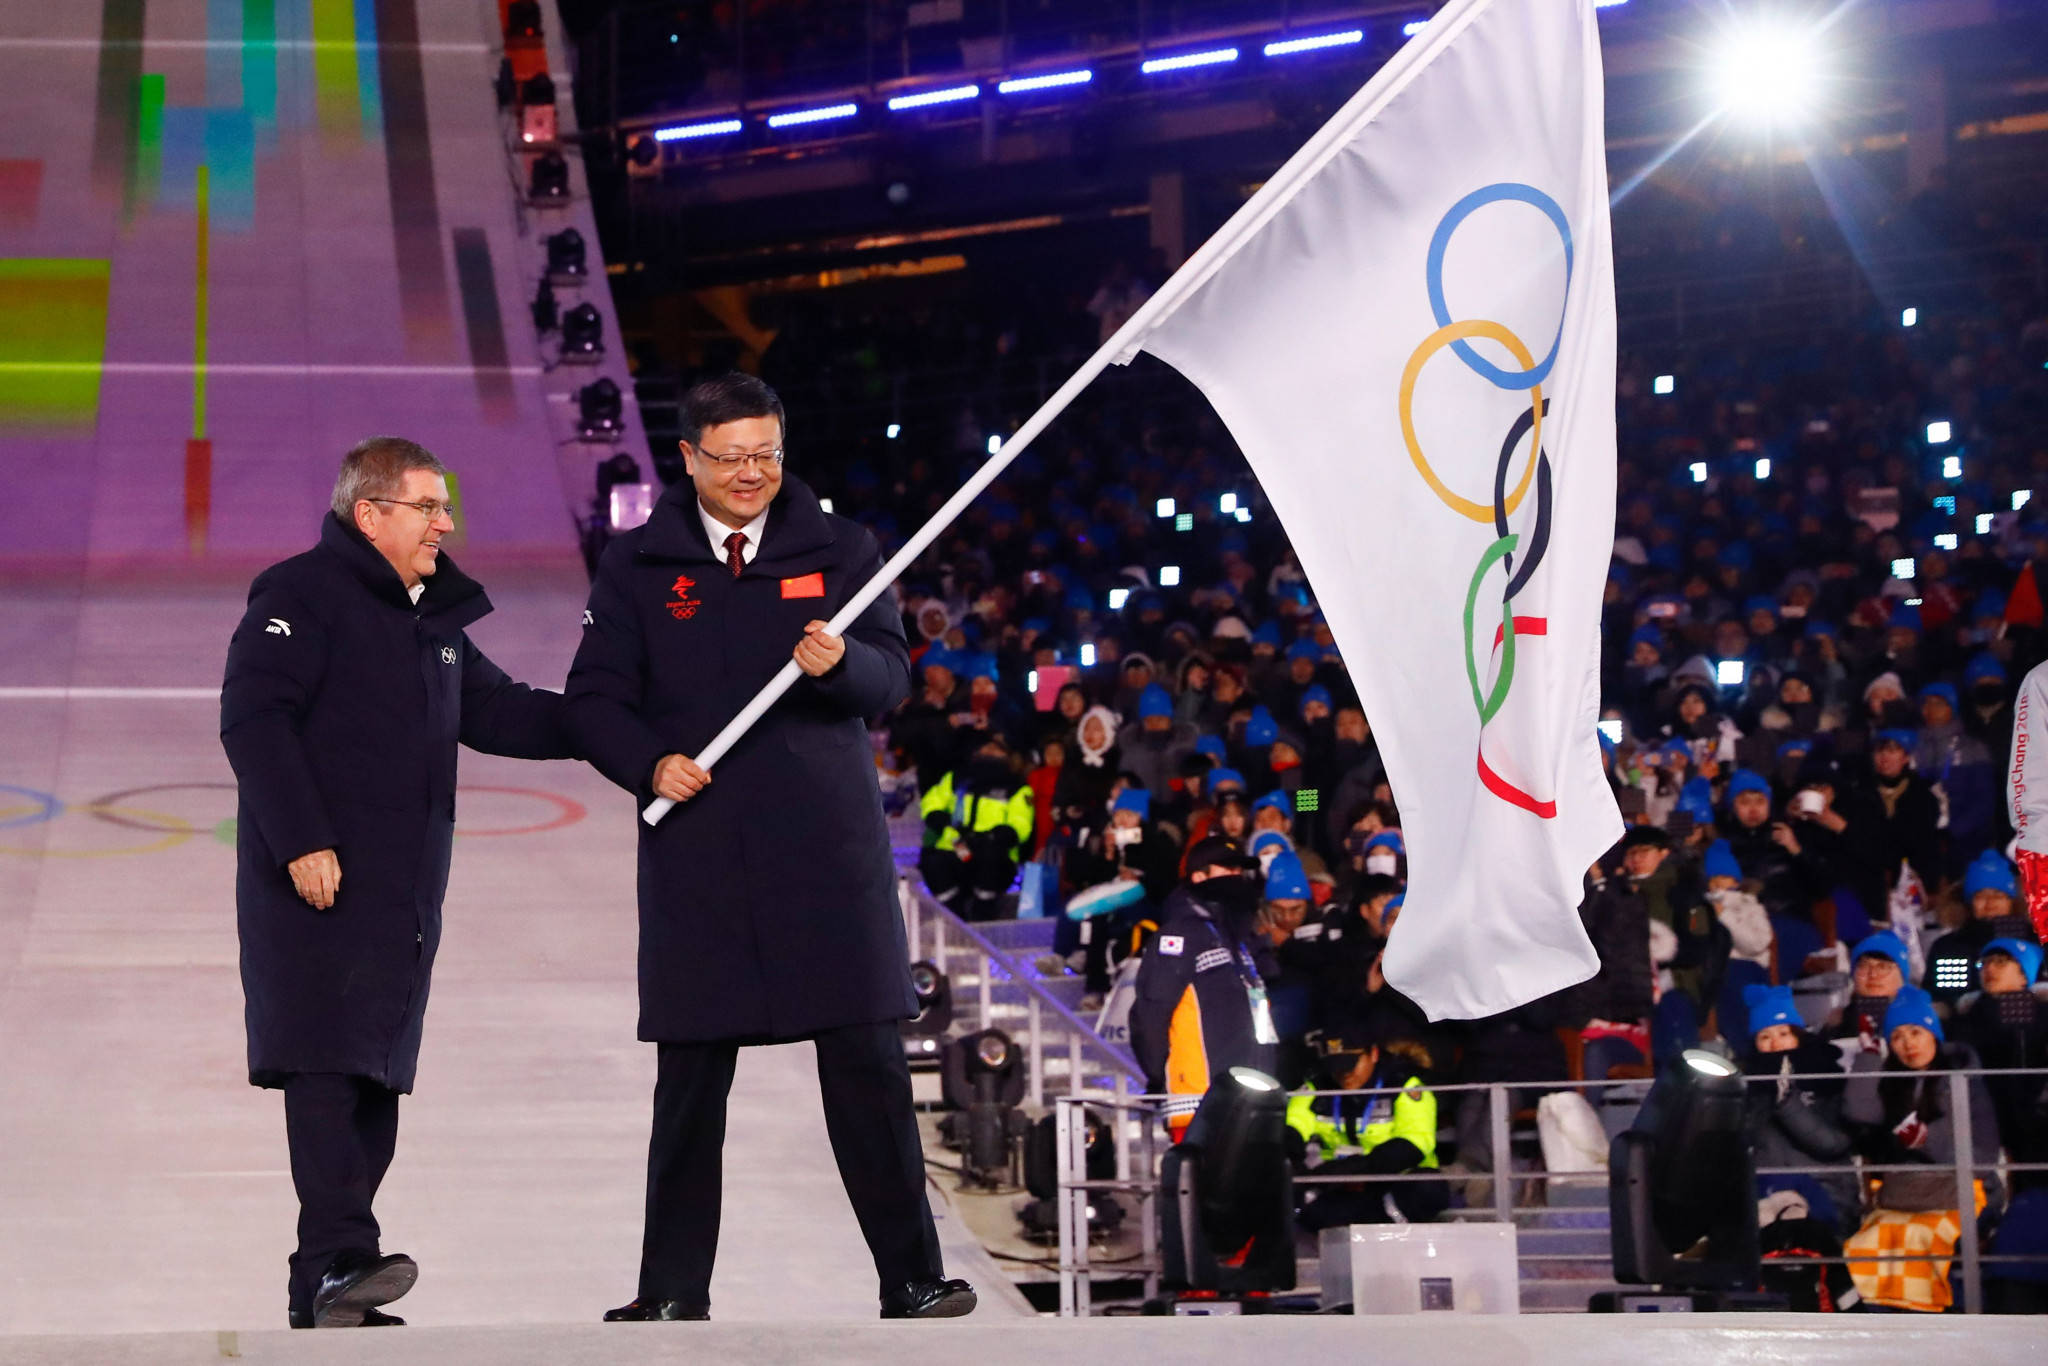 Beijing Mayor Chen Jining was handed the Olympic flag during the Closing Ceremony of the Pyeongchang 2018 Winter Olympic Games ©Getty Images